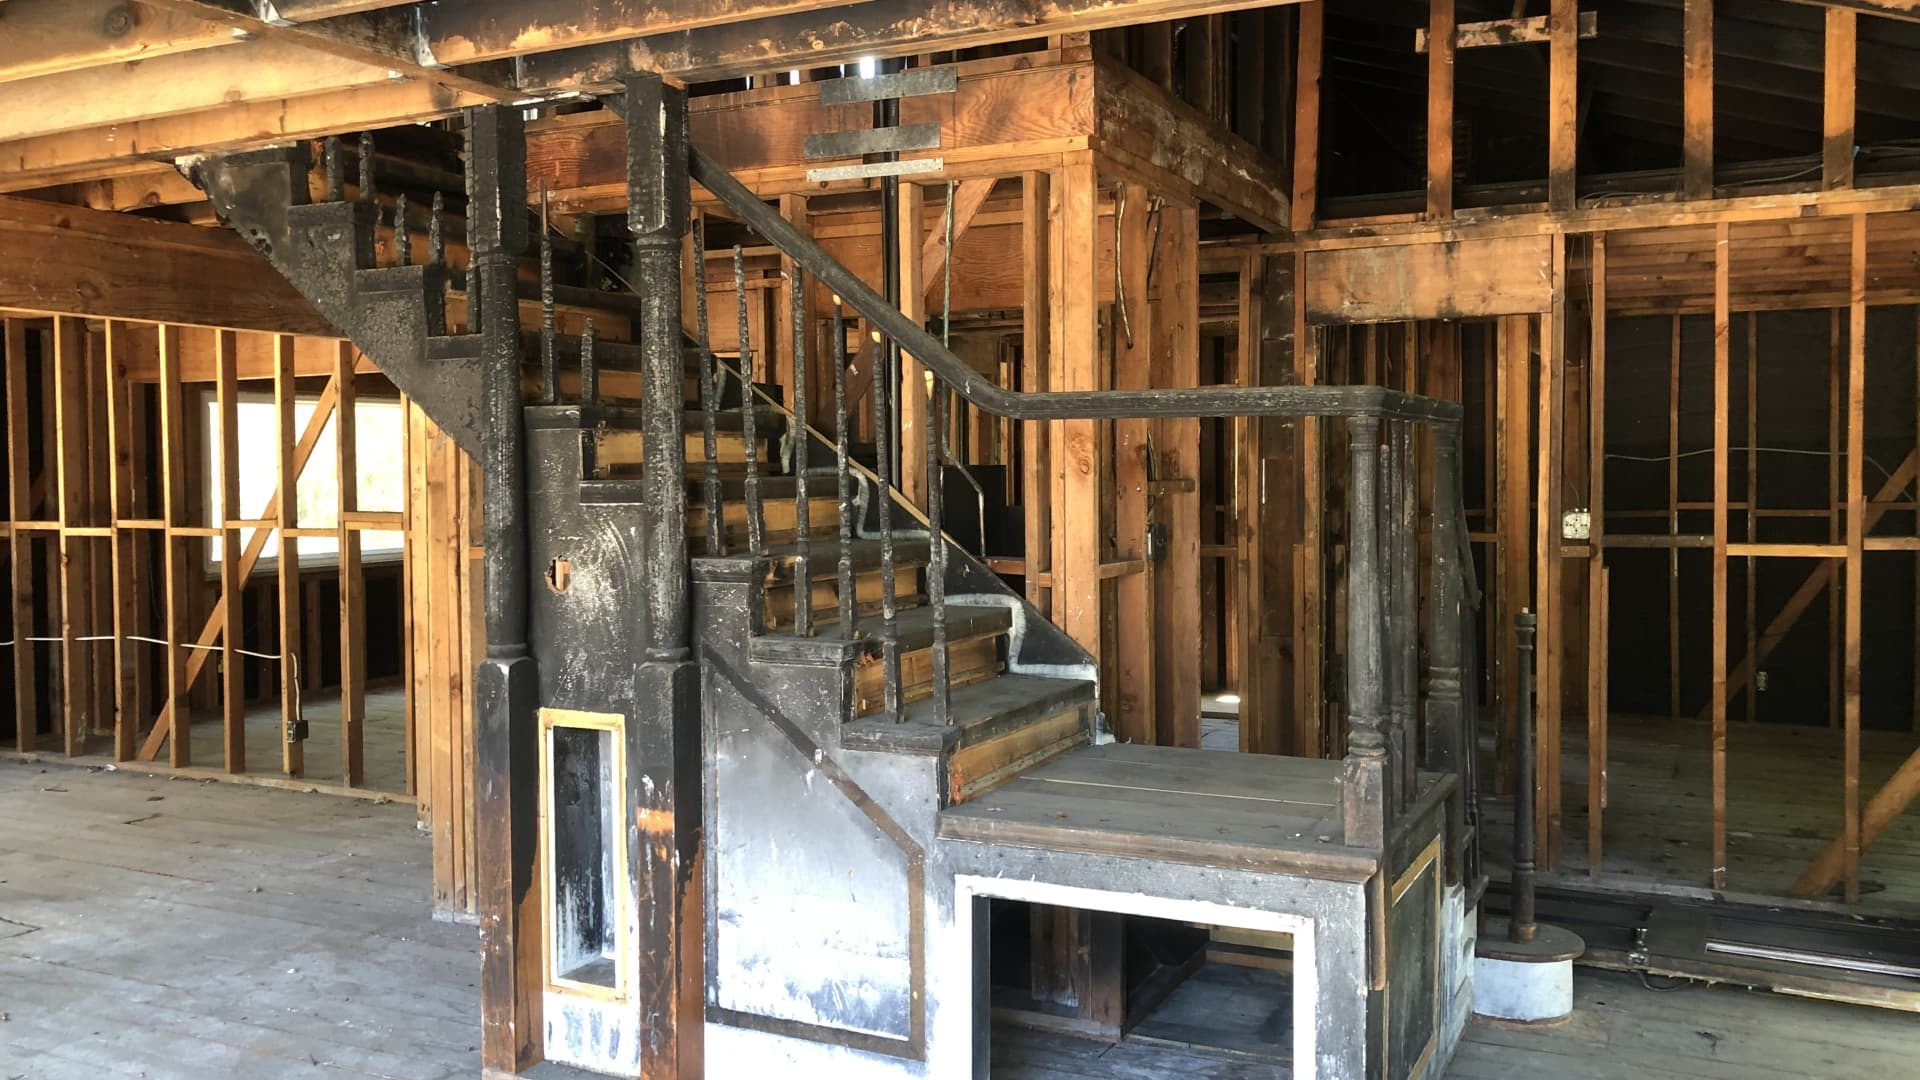 A fire-damaged home in Walnut Creek, California has sold within days after bidding war.